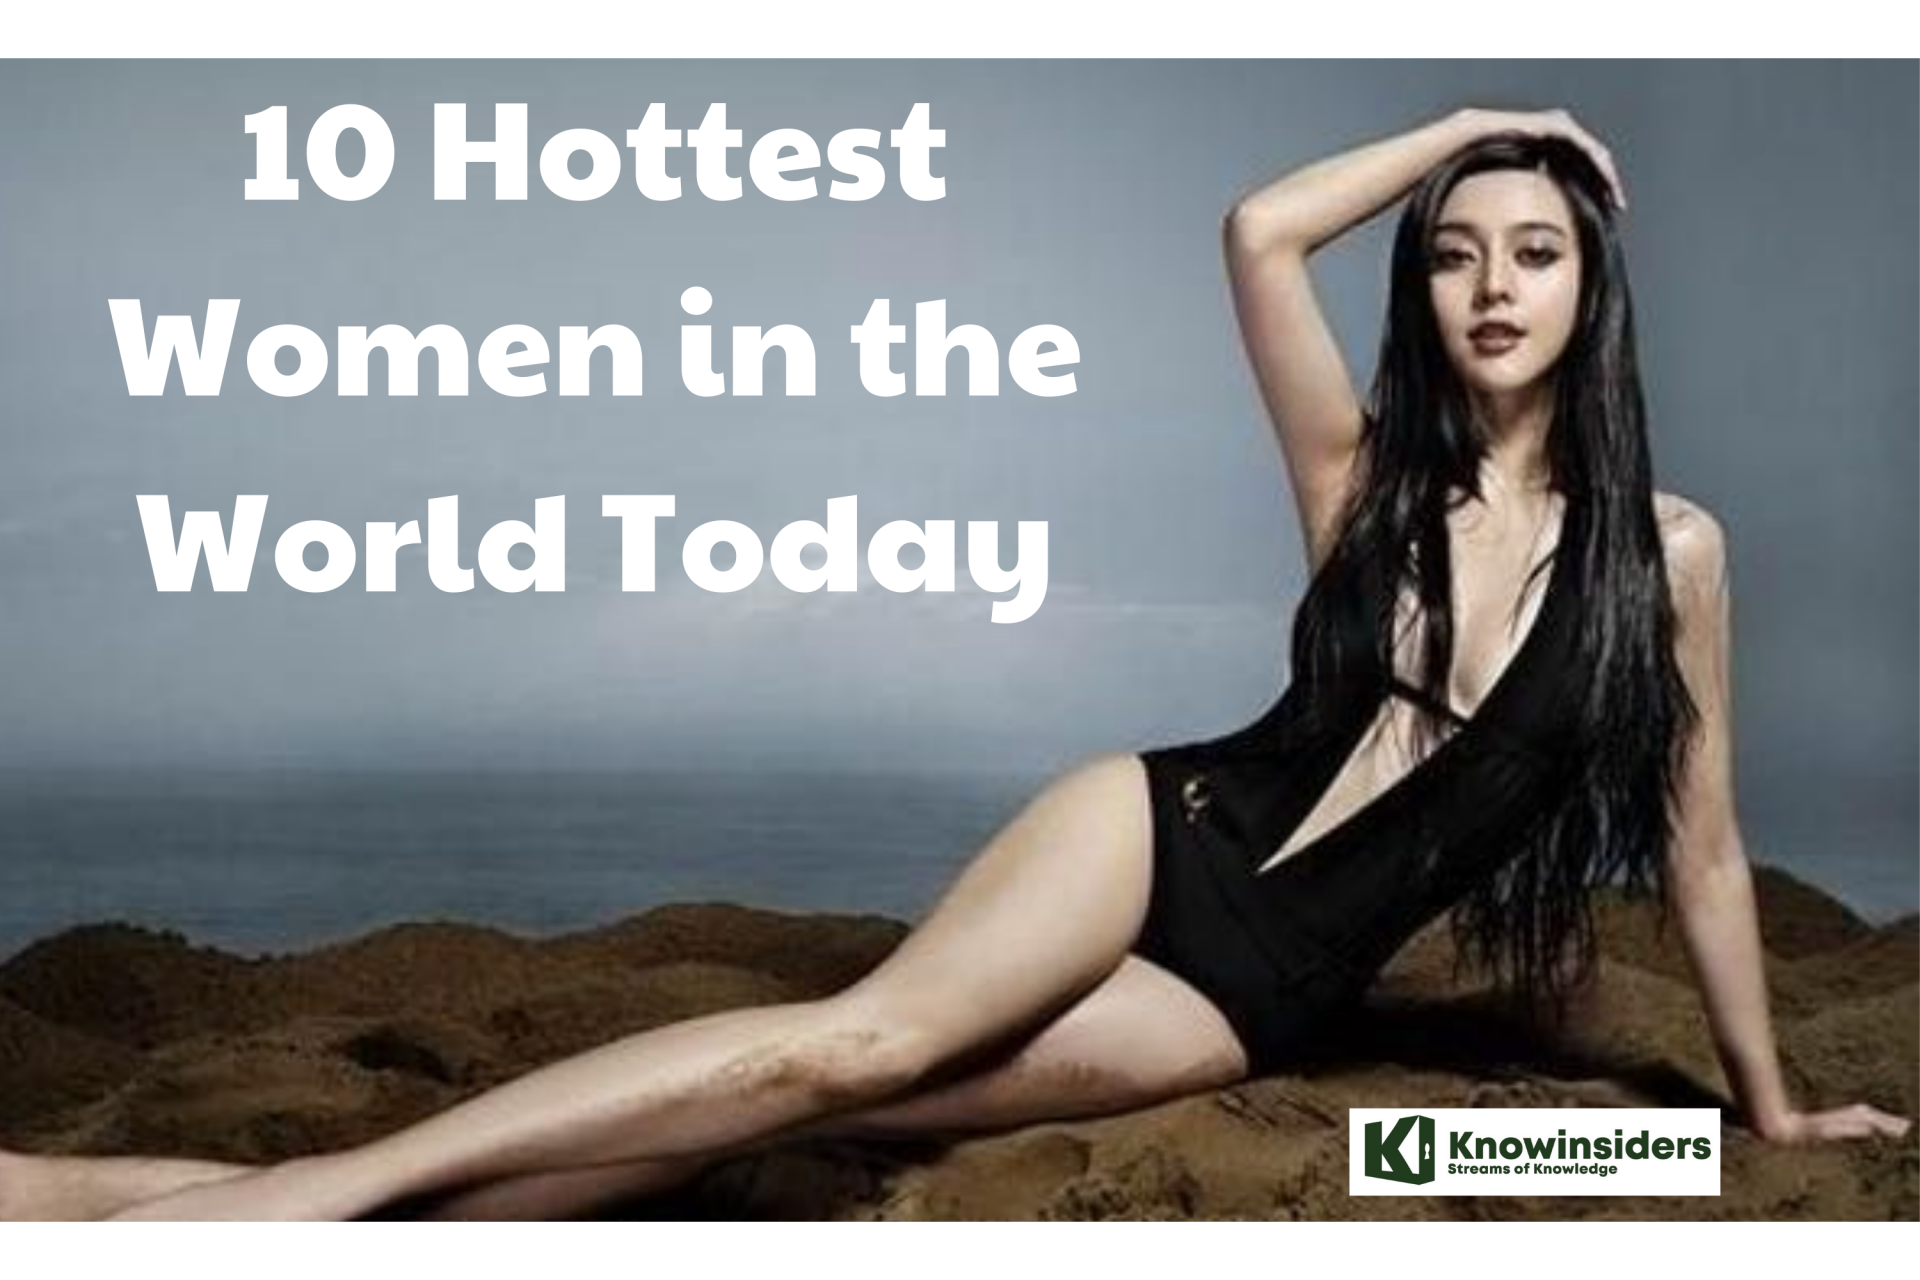 10 Hottest Women in the World Today